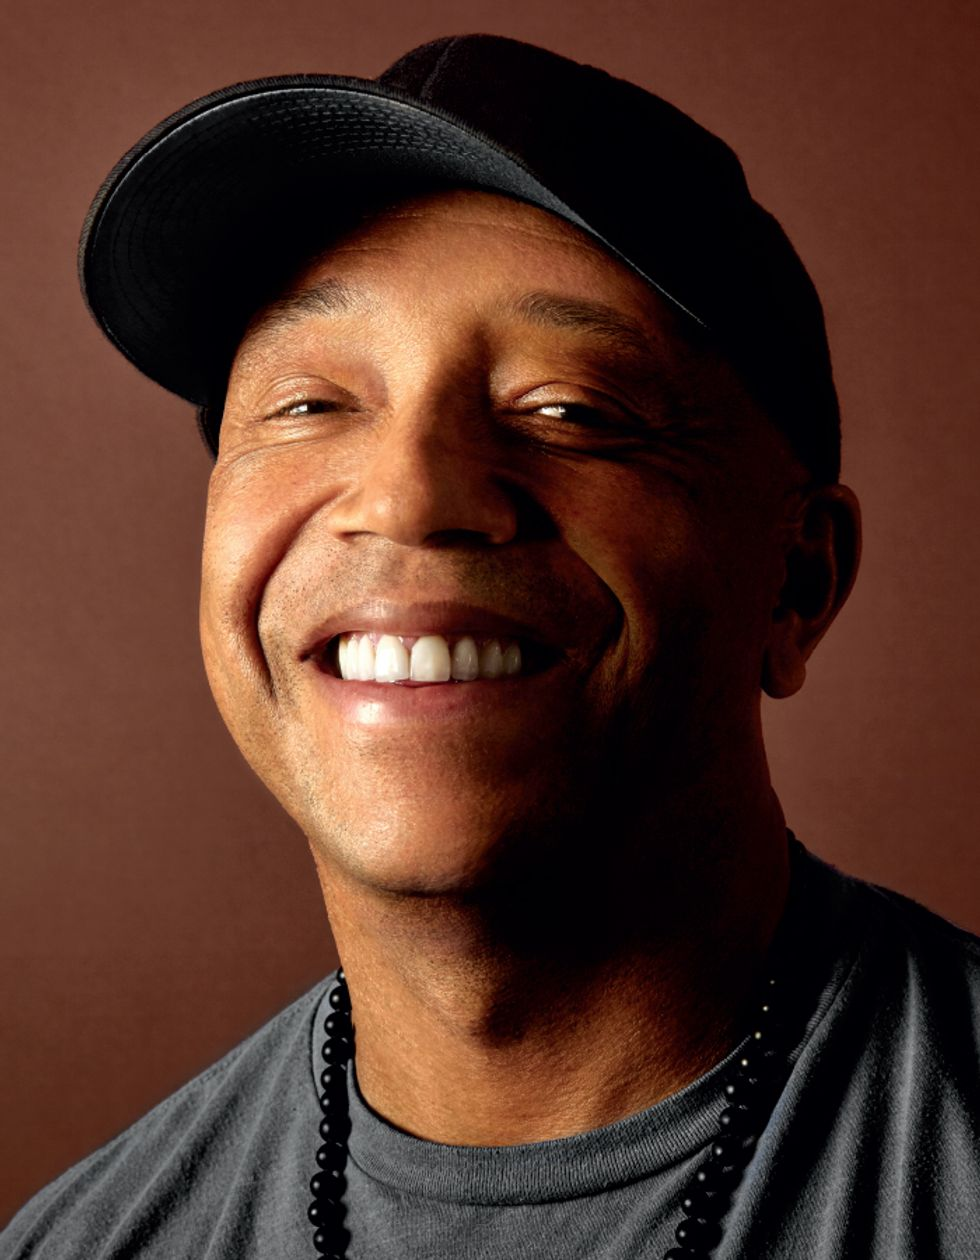 Use Your Voice: Russell Simmons